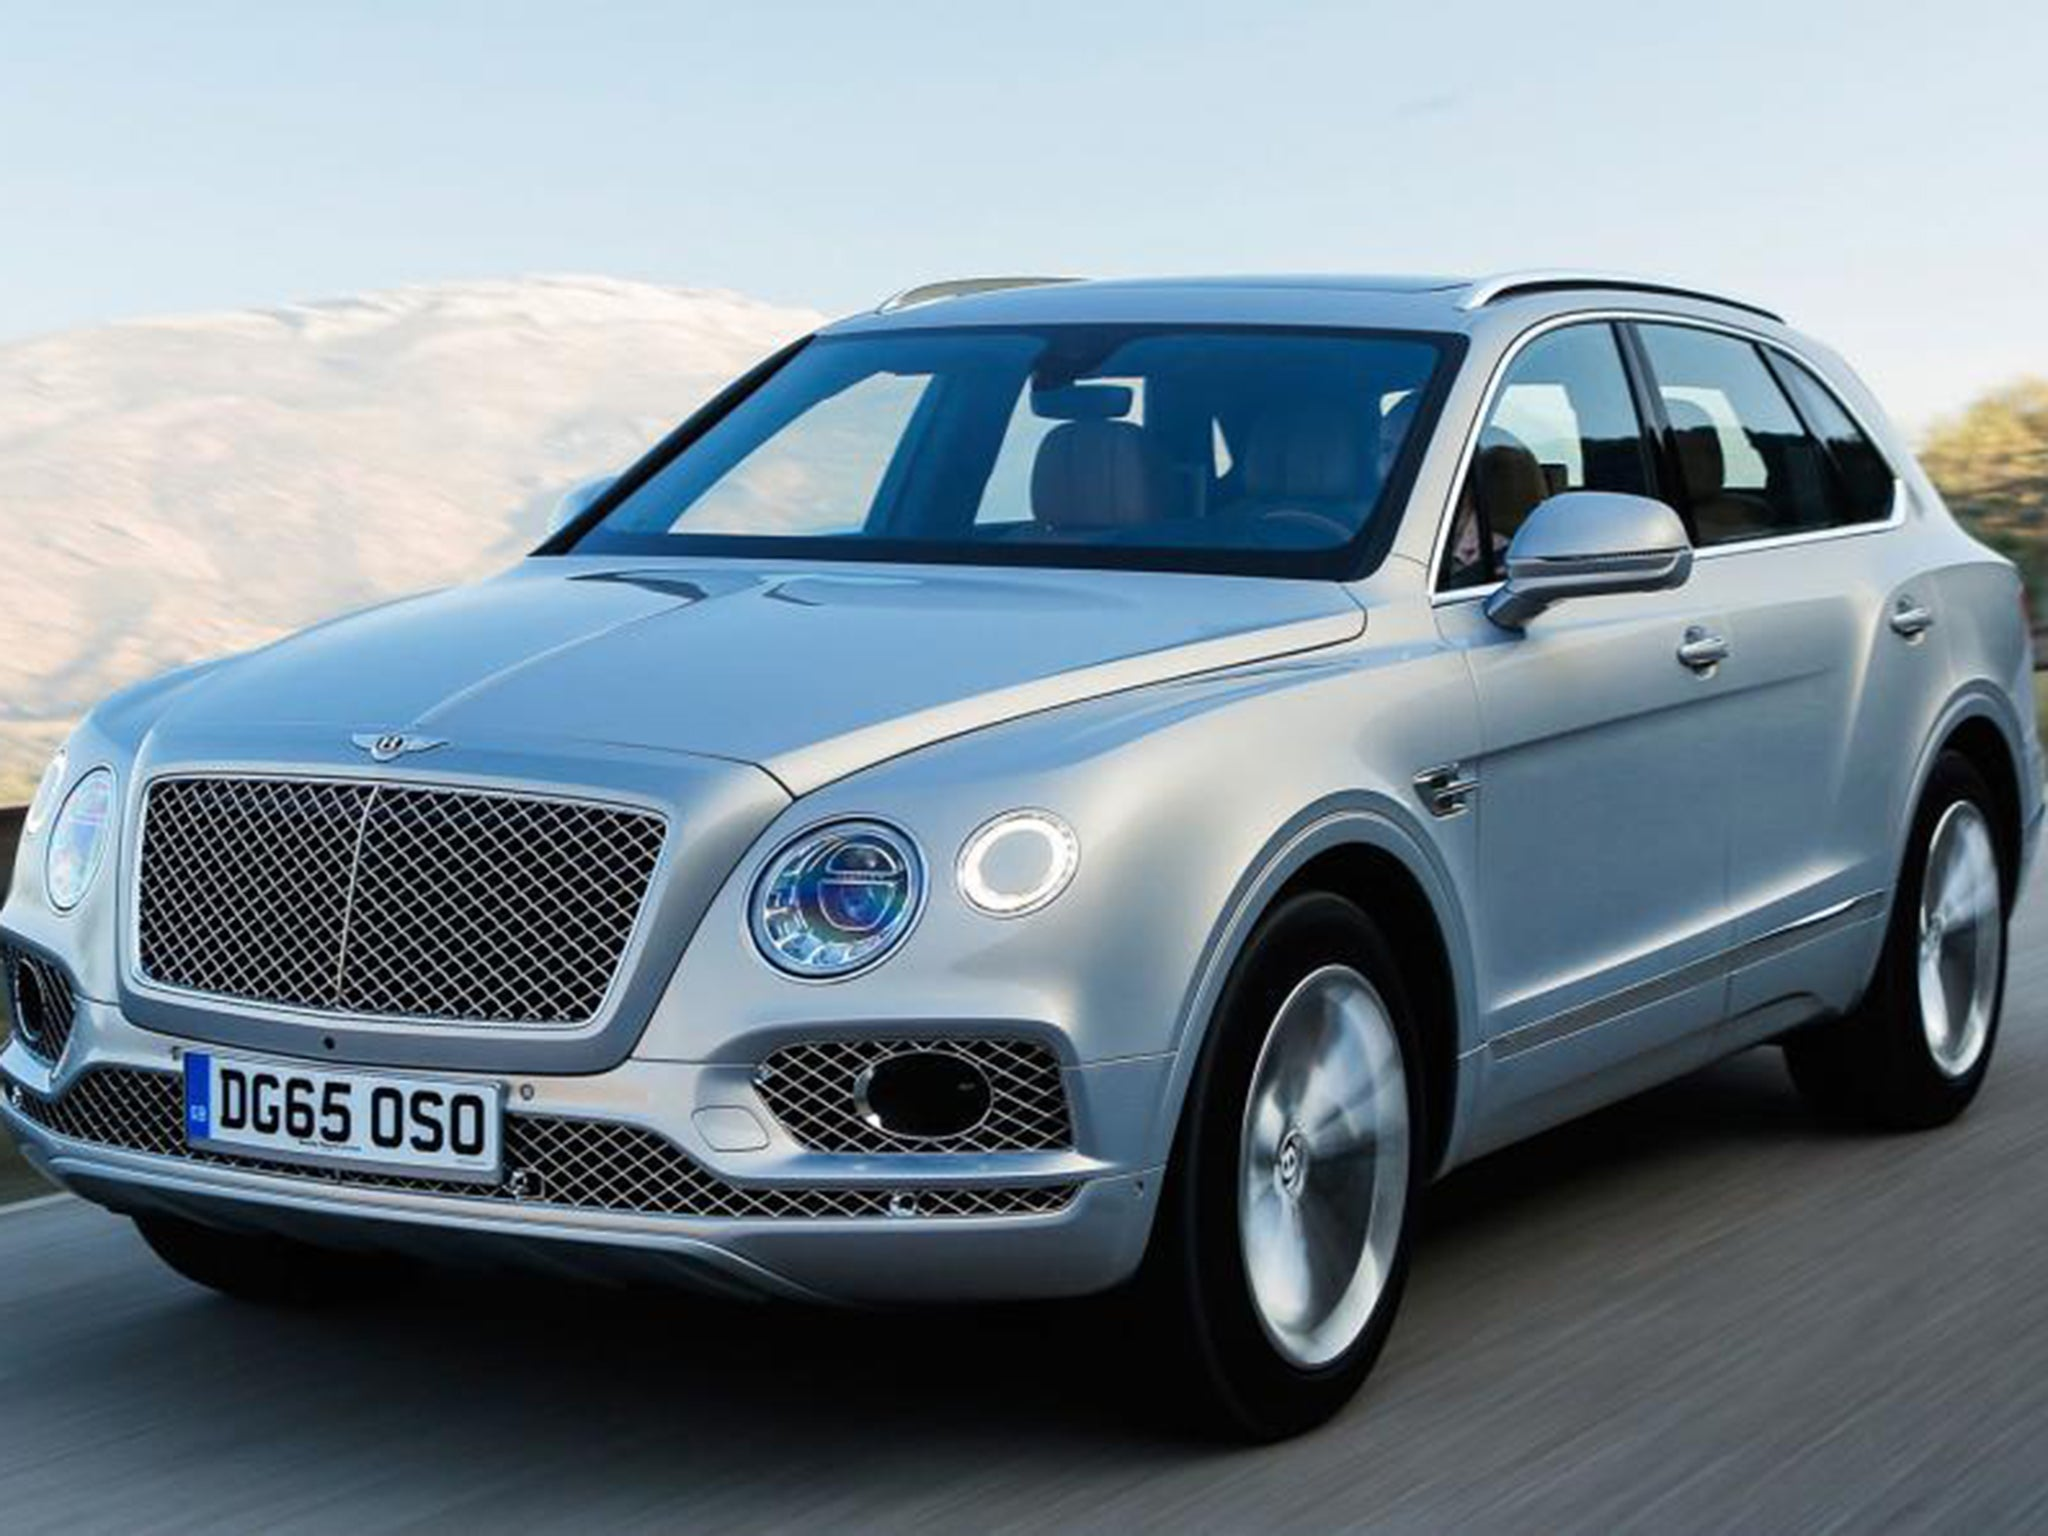 bentley bentayga car review much anticipated british. Cars Review. Best American Auto & Cars Review